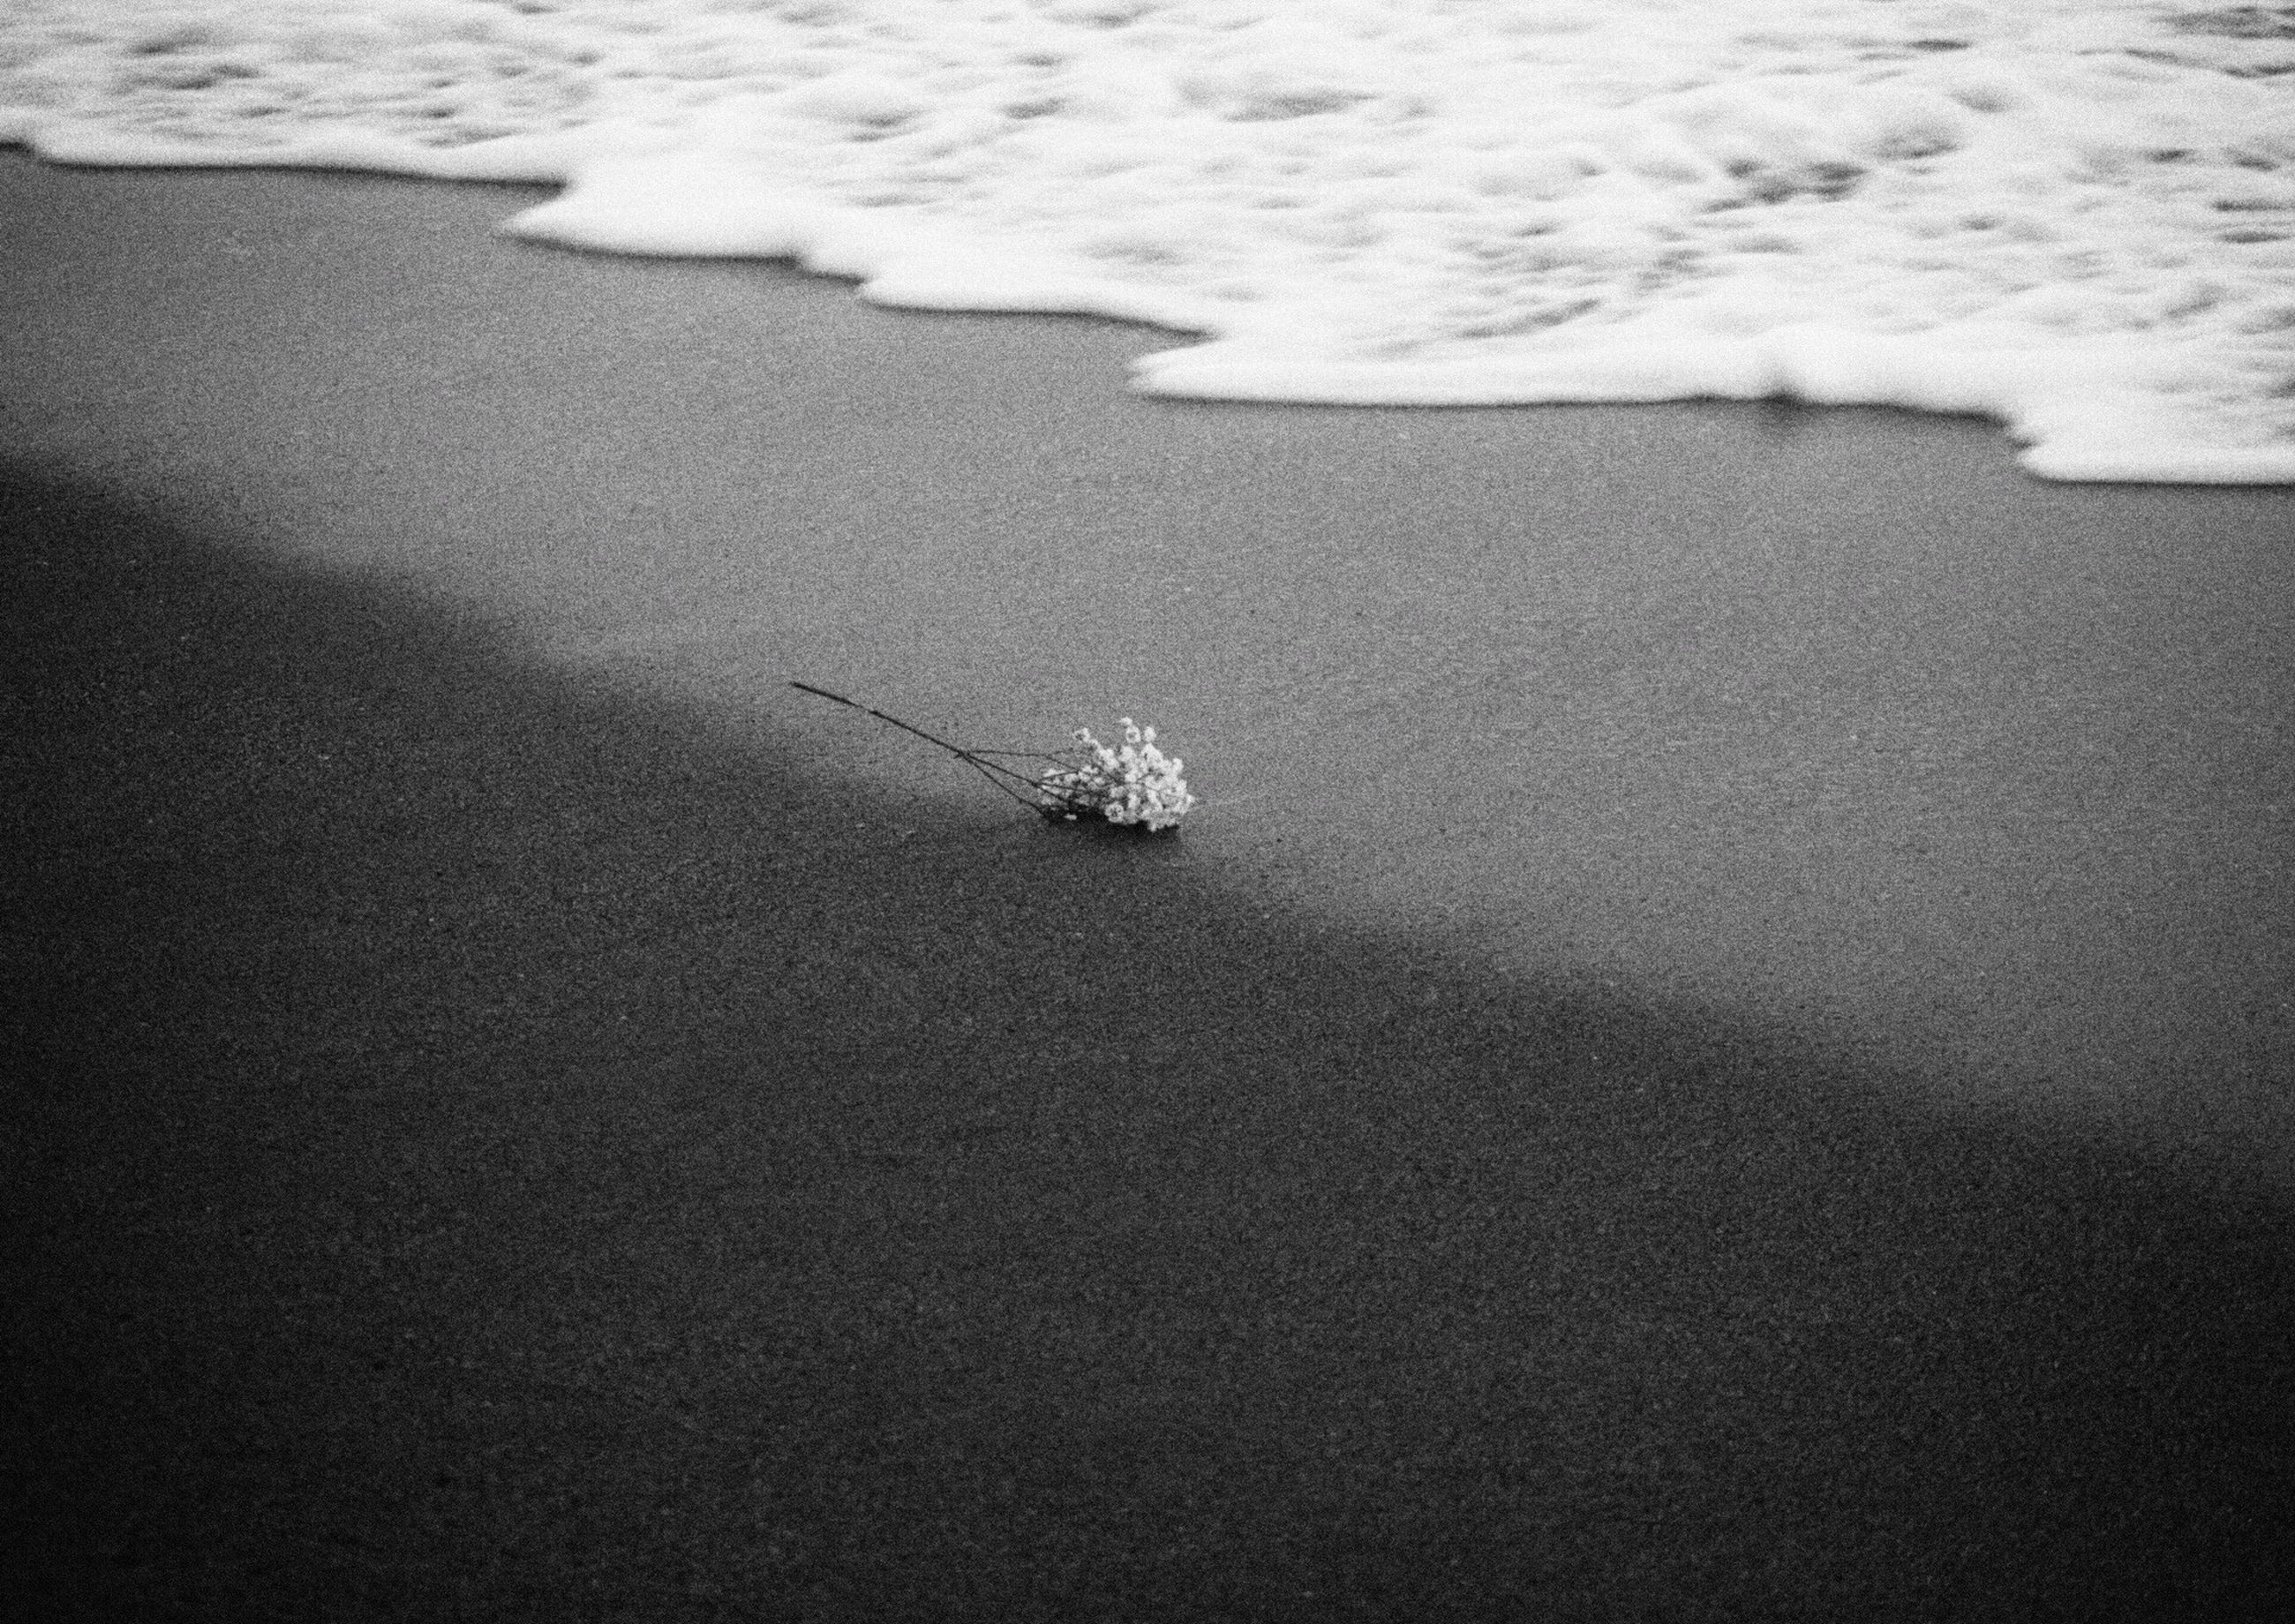 beach, nature, land, day, sea, sand, no people, water, one animal, high angle view, outdoors, animal, beauty in nature, animal themes, animals in the wild, tranquility, winter, animal wildlife